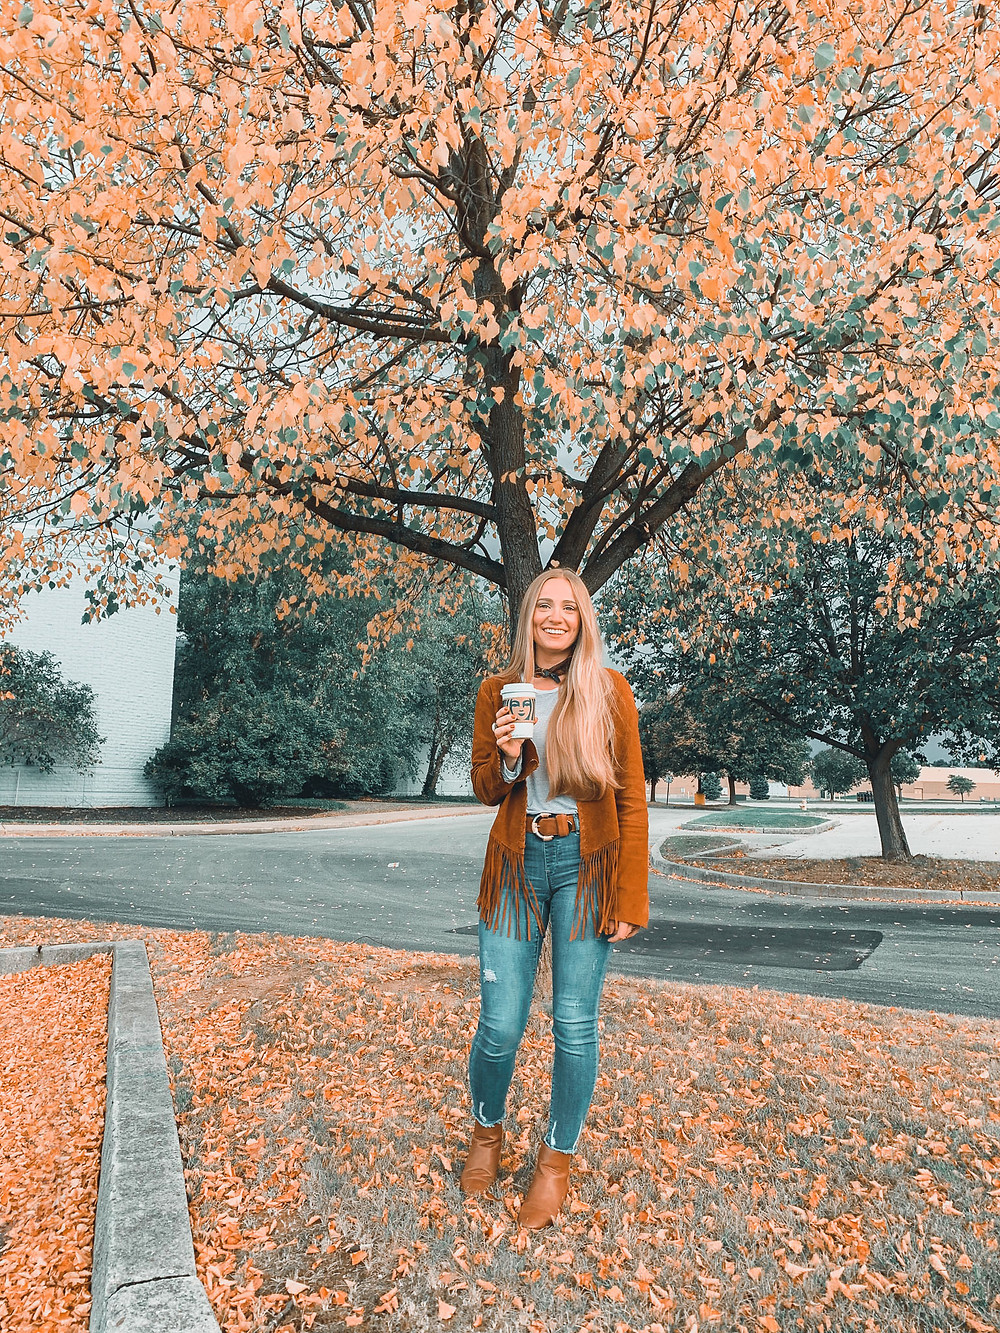 Blonde hair, fall, fall leaves, changing leaves, jeans, fringe suede jacket, scarf, parking lot, fall scene, boots